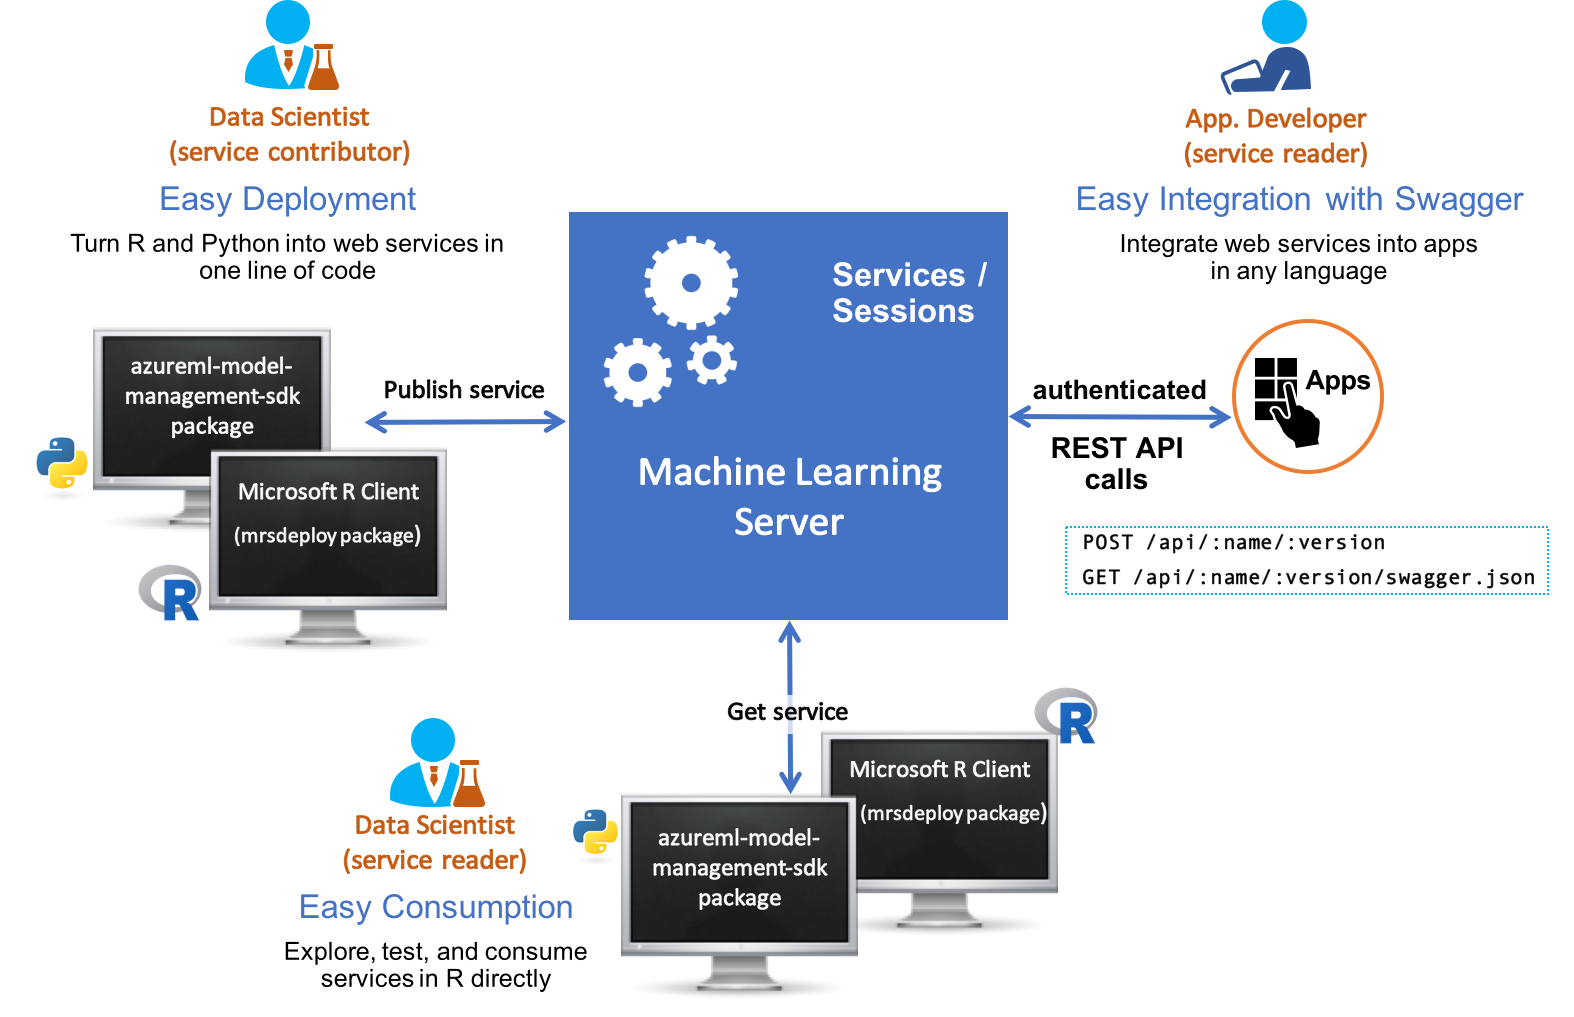 Operationalize models, analytics, & web services in Machine